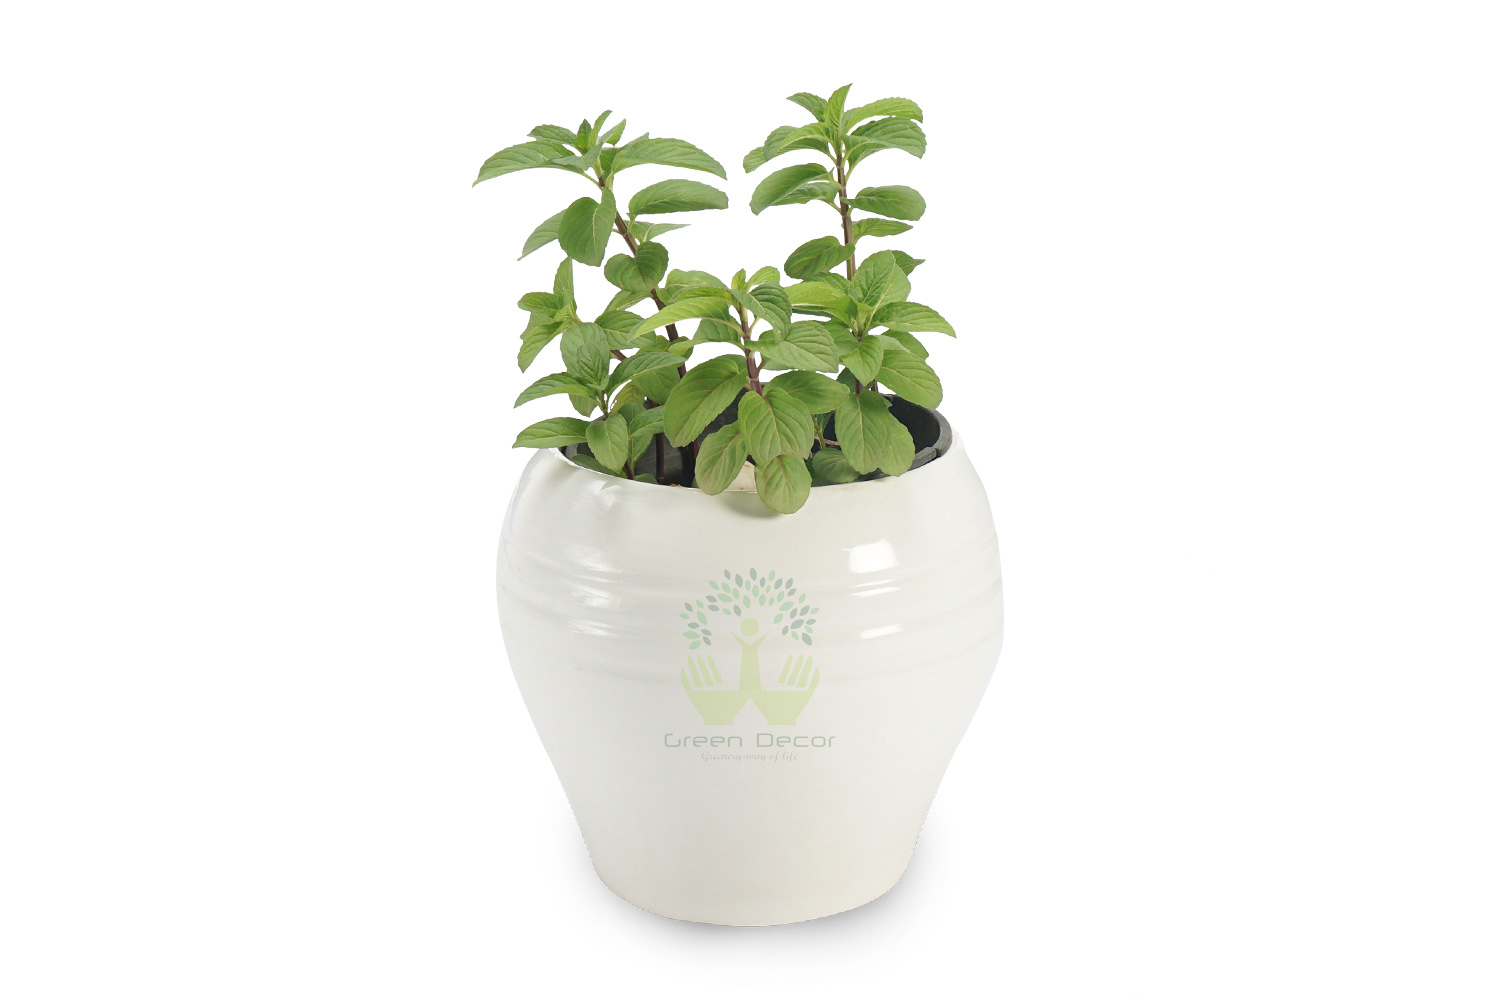 Buy Lemon Balm Plants , White Pots and seeds in Delhi NCR by the best online nursery shop Greendecor.